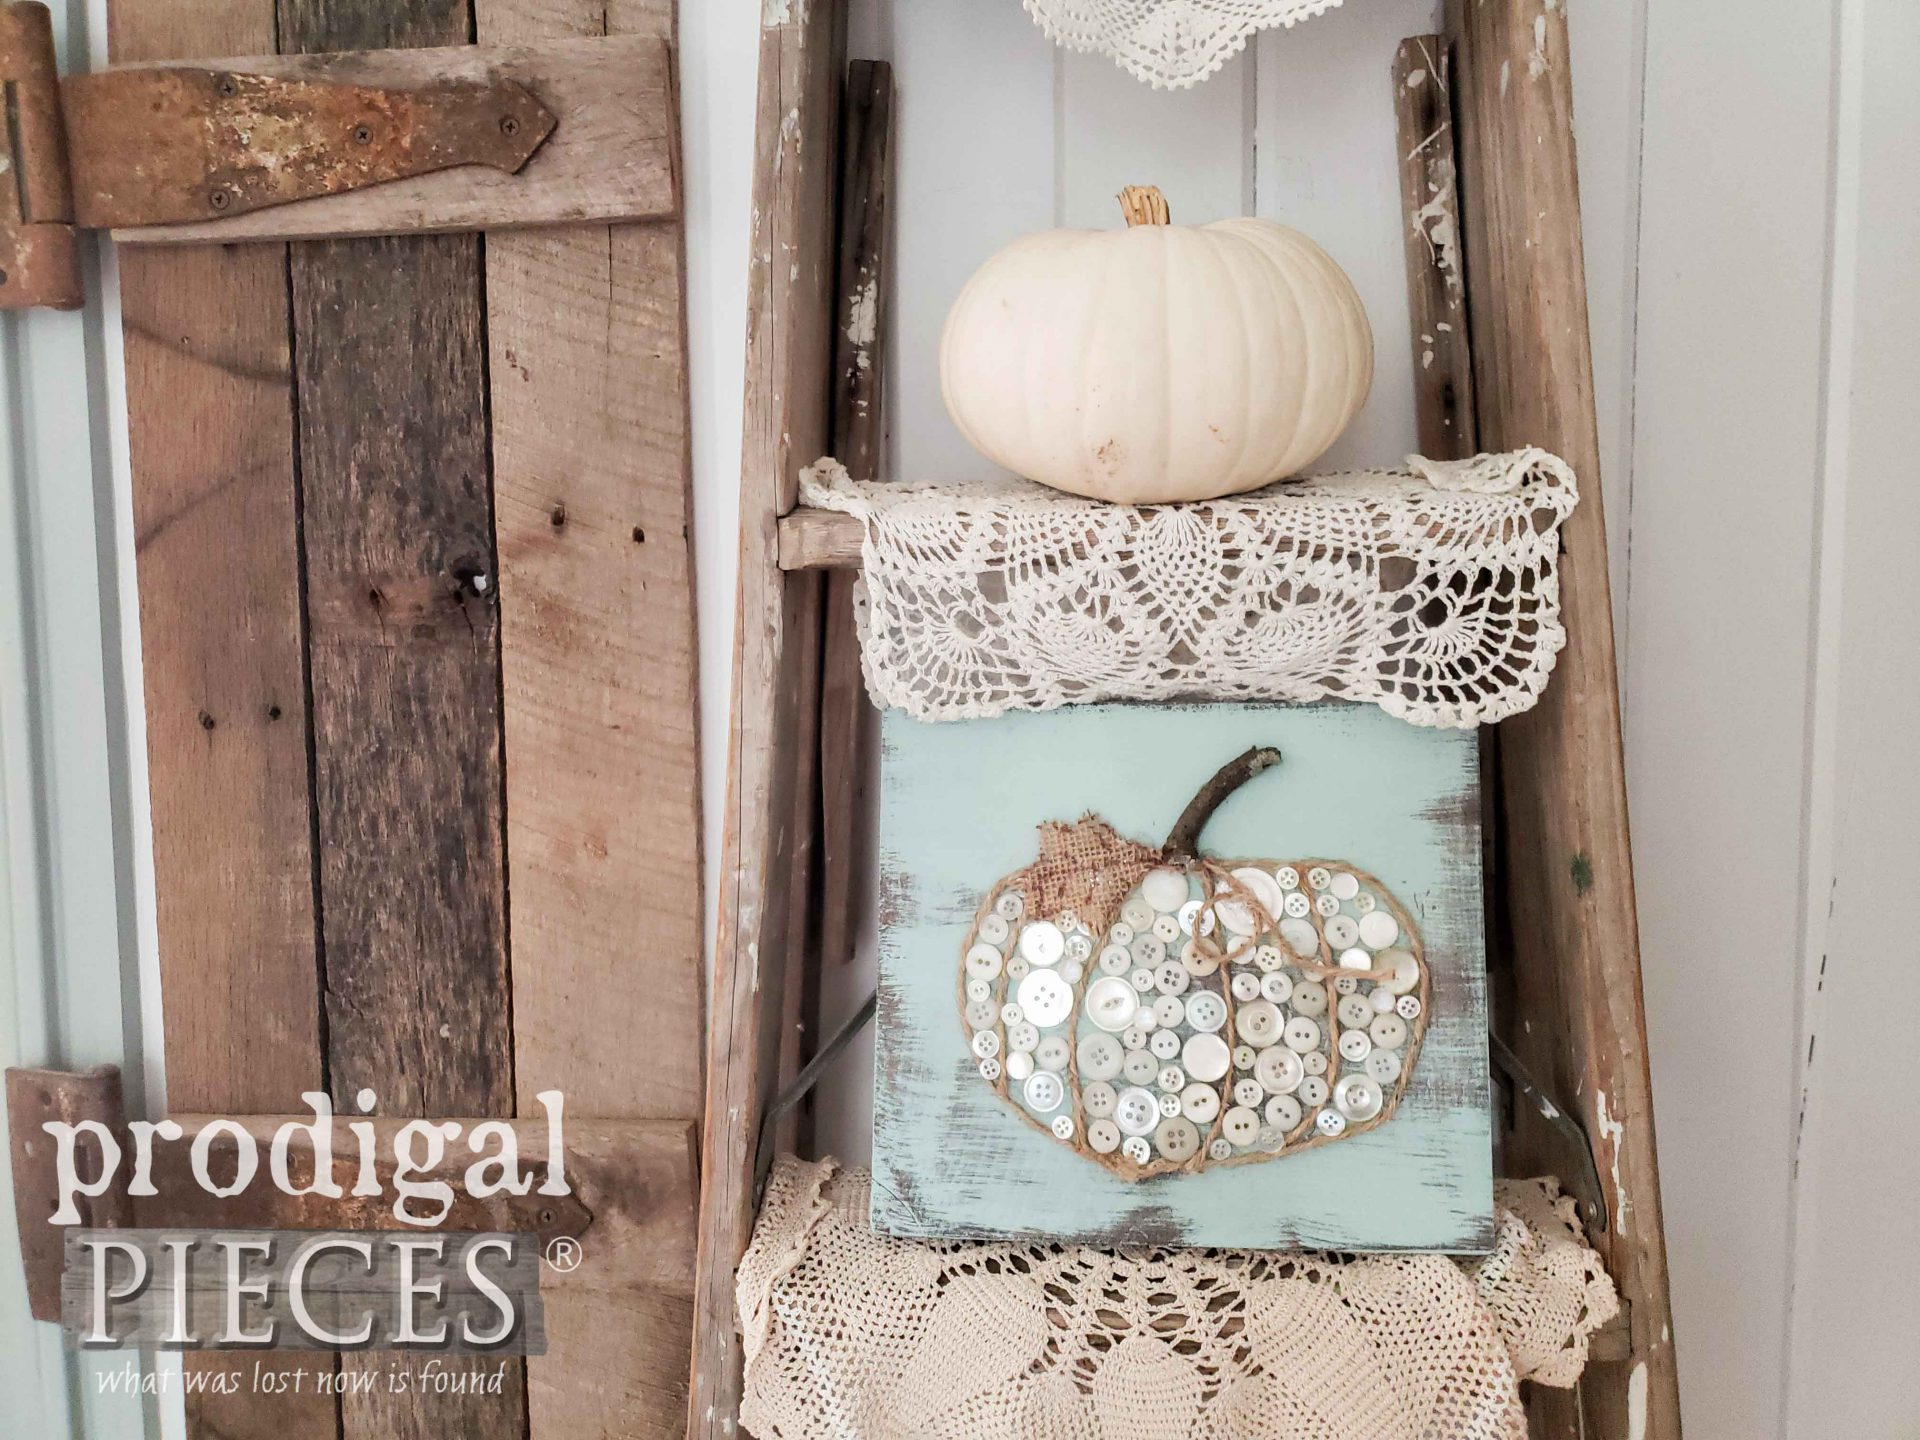 White Button Pumpkin Art by Prodigal Pieces Kids CREATE | Video tutorial at prodigalpieces.com #prodigalpieces #diy #kids #crafts #farmhouse #home #homedecor #fall